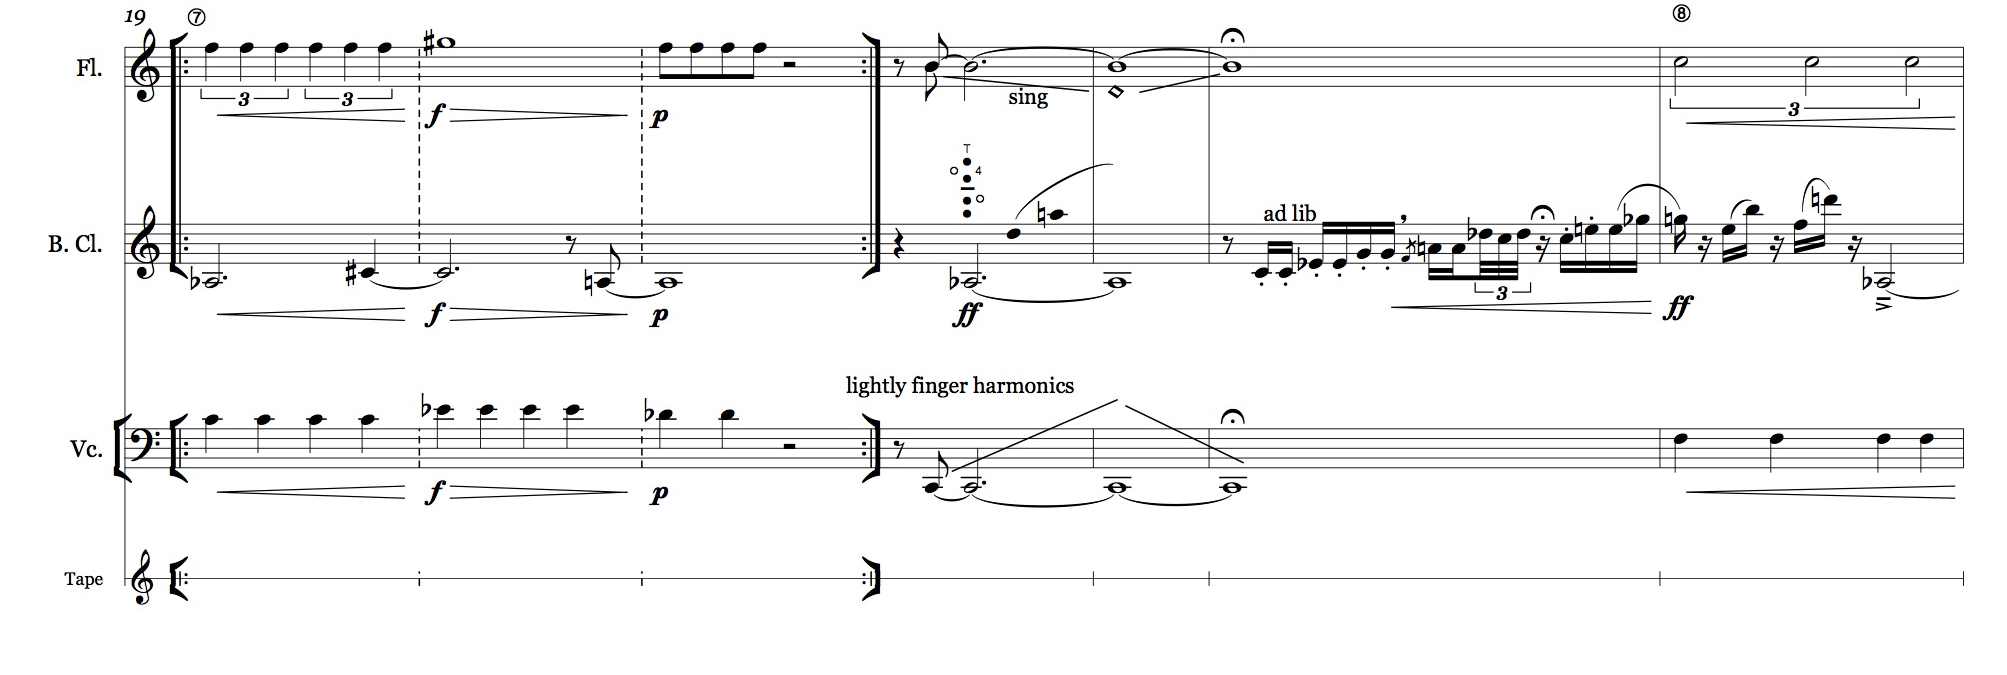 Part of the score of  Prypriat  for Flute, Cello, Bass Clarinet and Tape